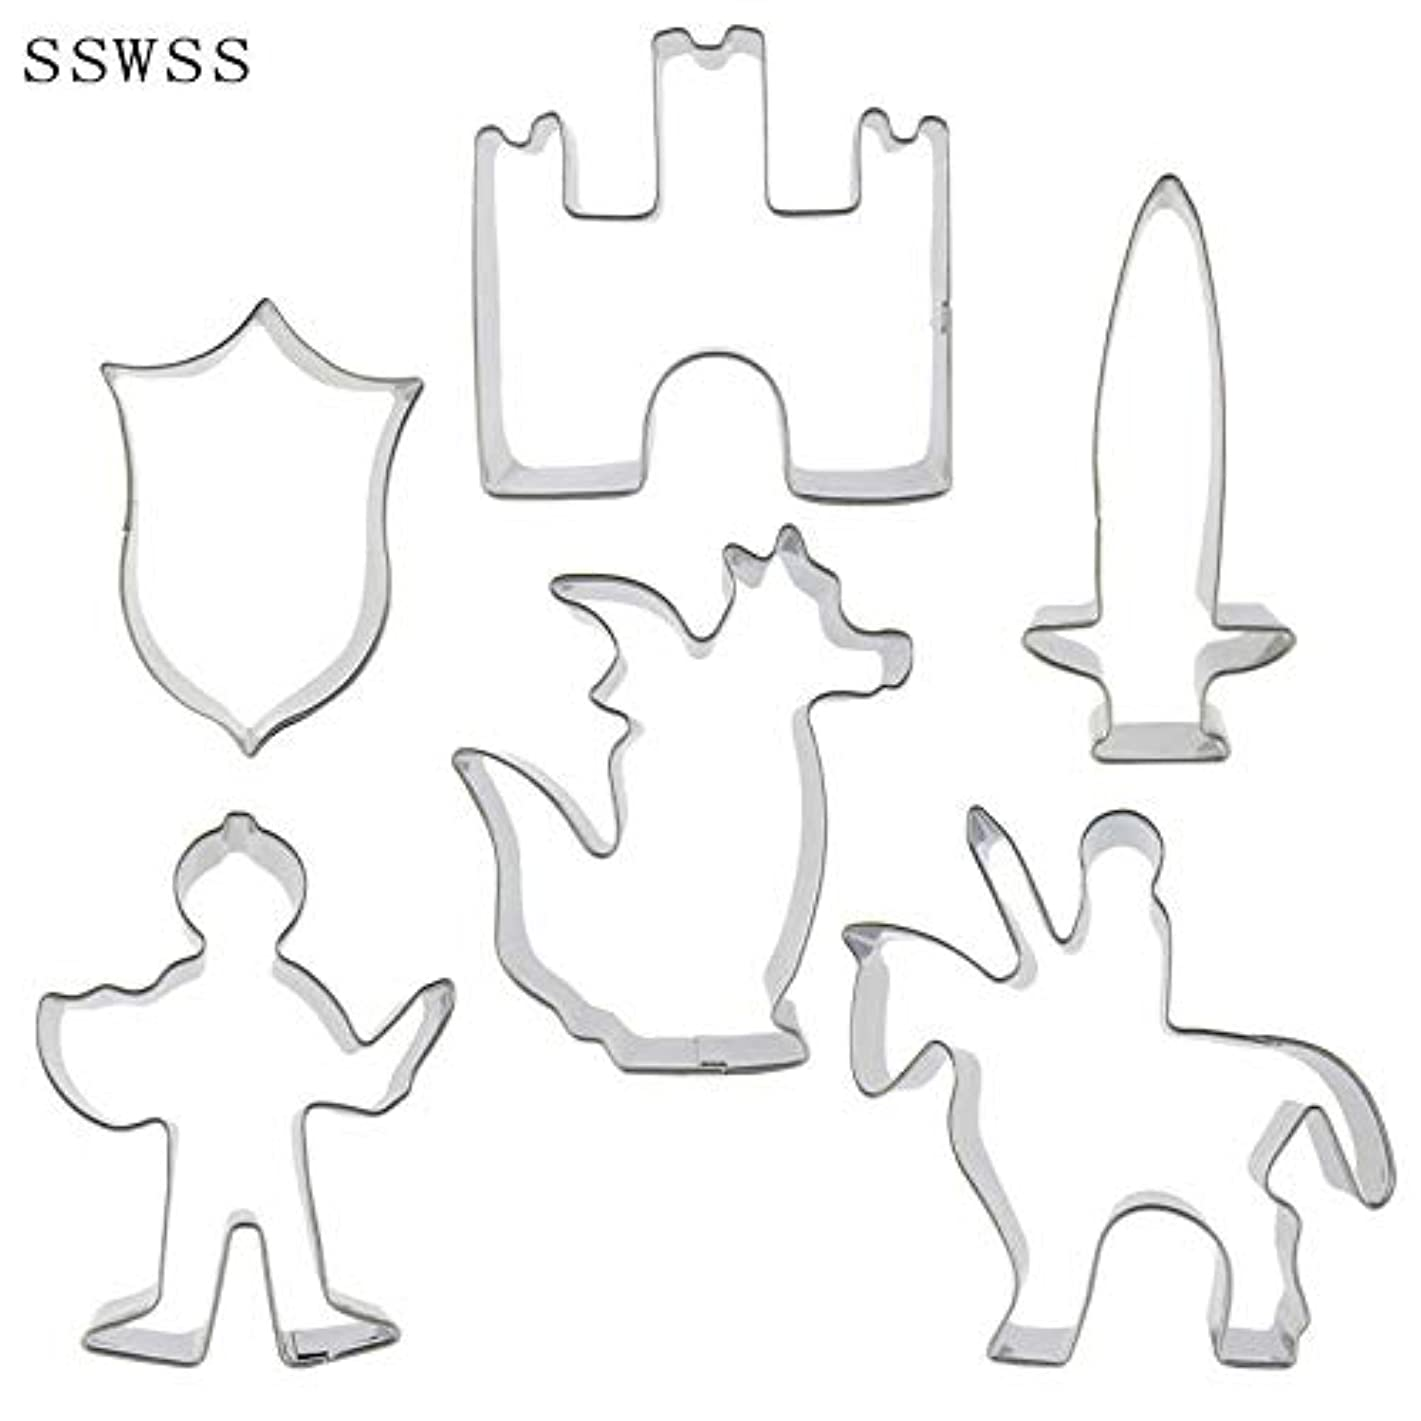 Six Cartoon Figure Warriors,knights,Fire Dragons,Castles,Swords,Shield Cookie Cutters Baking Molds,Cake Decorating Fondant Tools